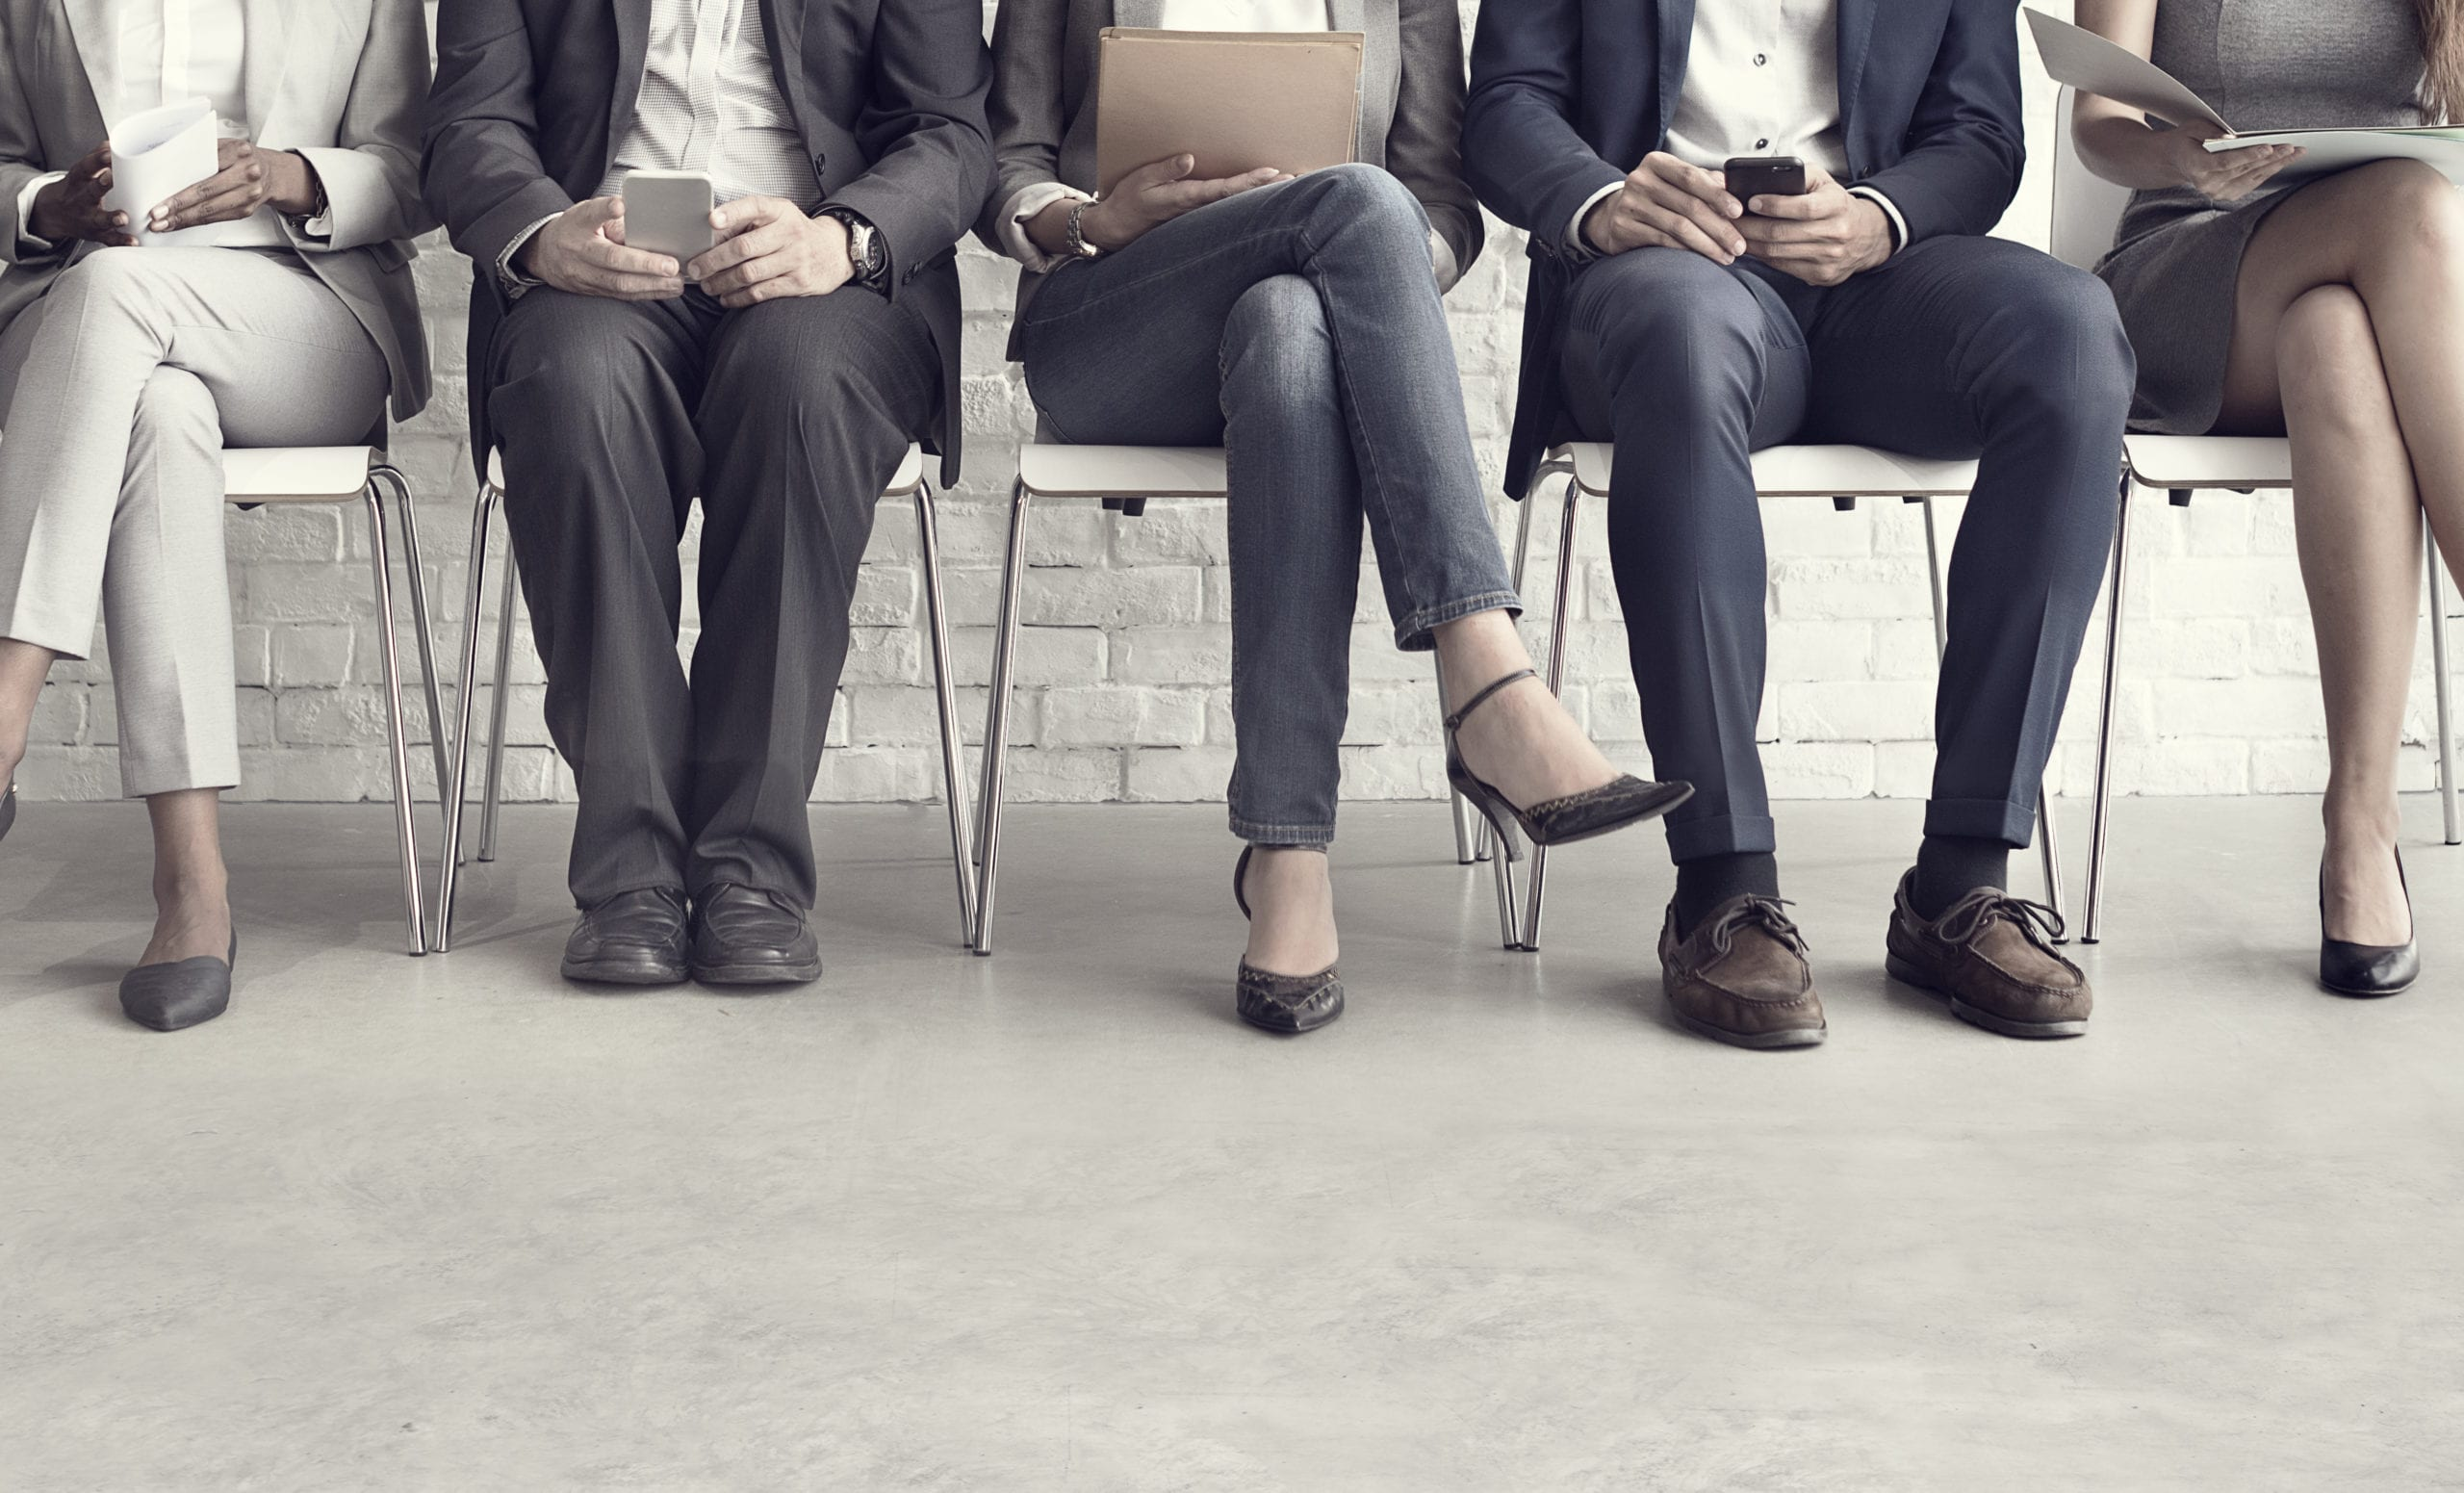 Full disclosure? What not to reveal when applying for a job